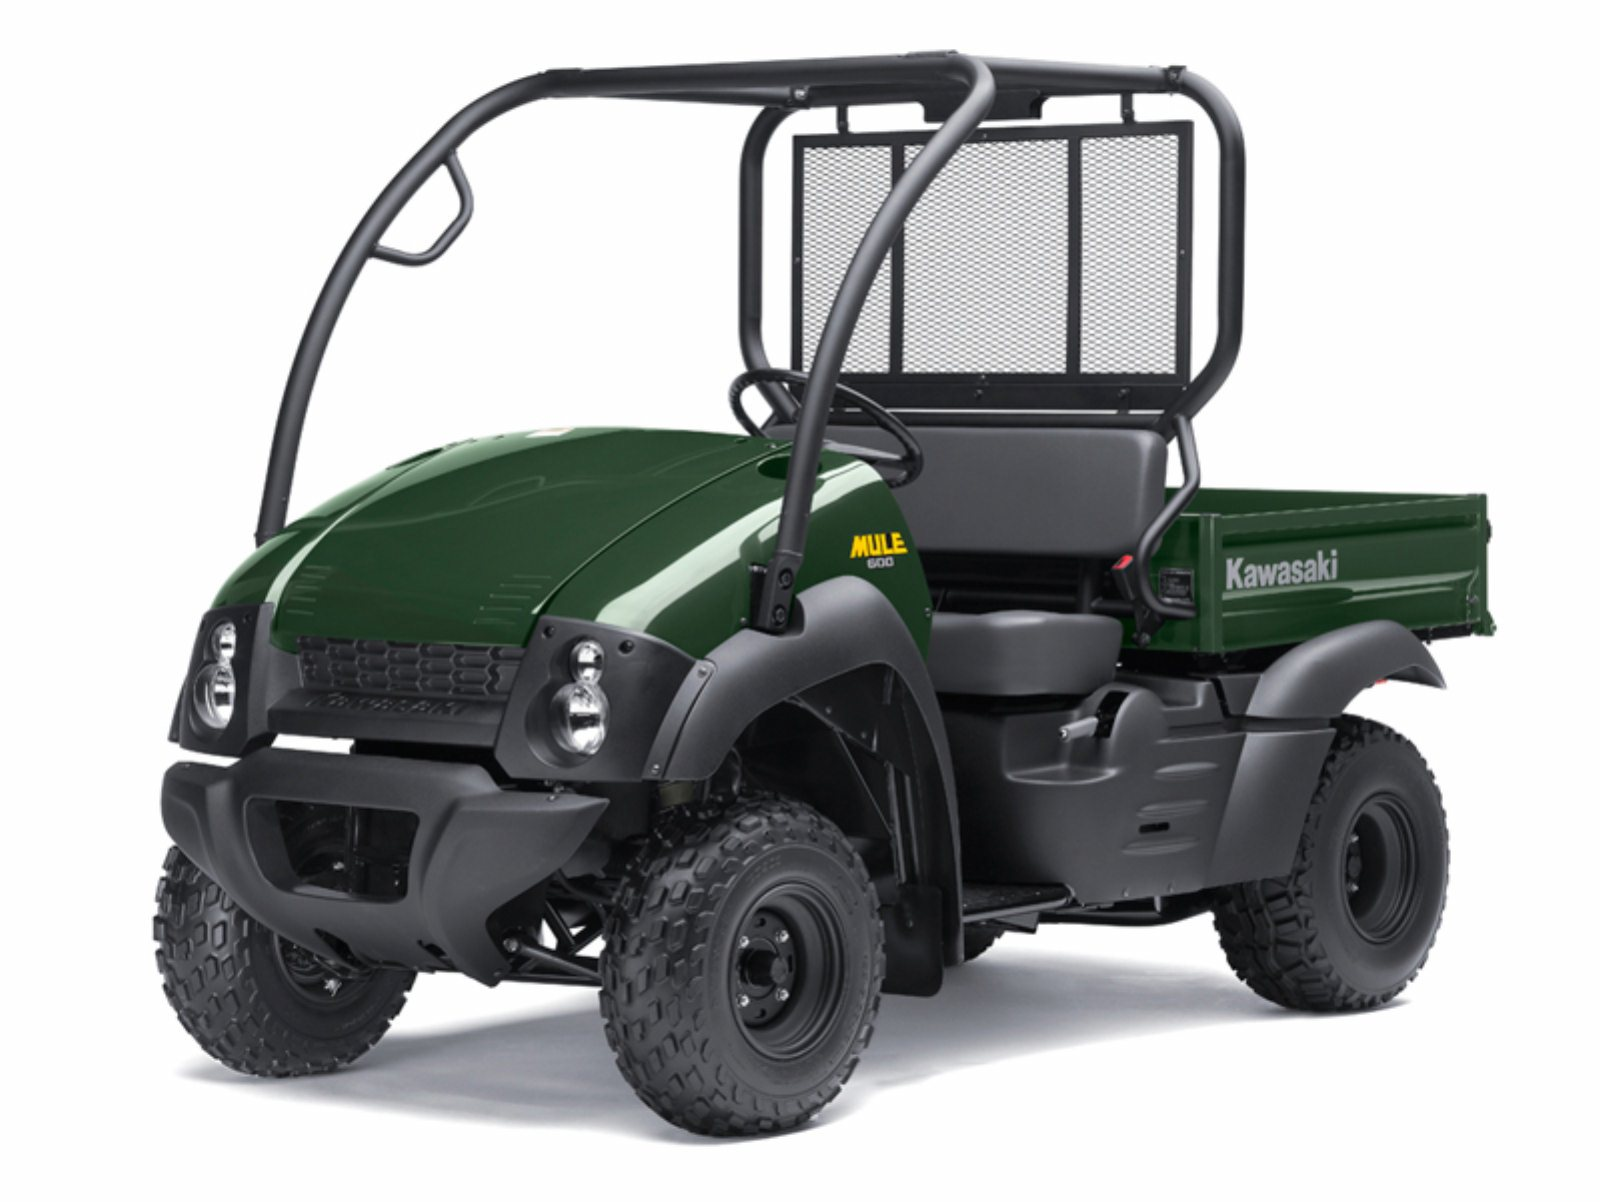 2012 Kawasaki Mule 600 | Top Sd on nissan oil filters, harley davidson oil filters, golf cart oil seals, golf cart oil pump, dirt bike oil filters, 4 wheeler oil filters, yamaha g11 g16 air filters, golf cart oil change, industrial oil filters,